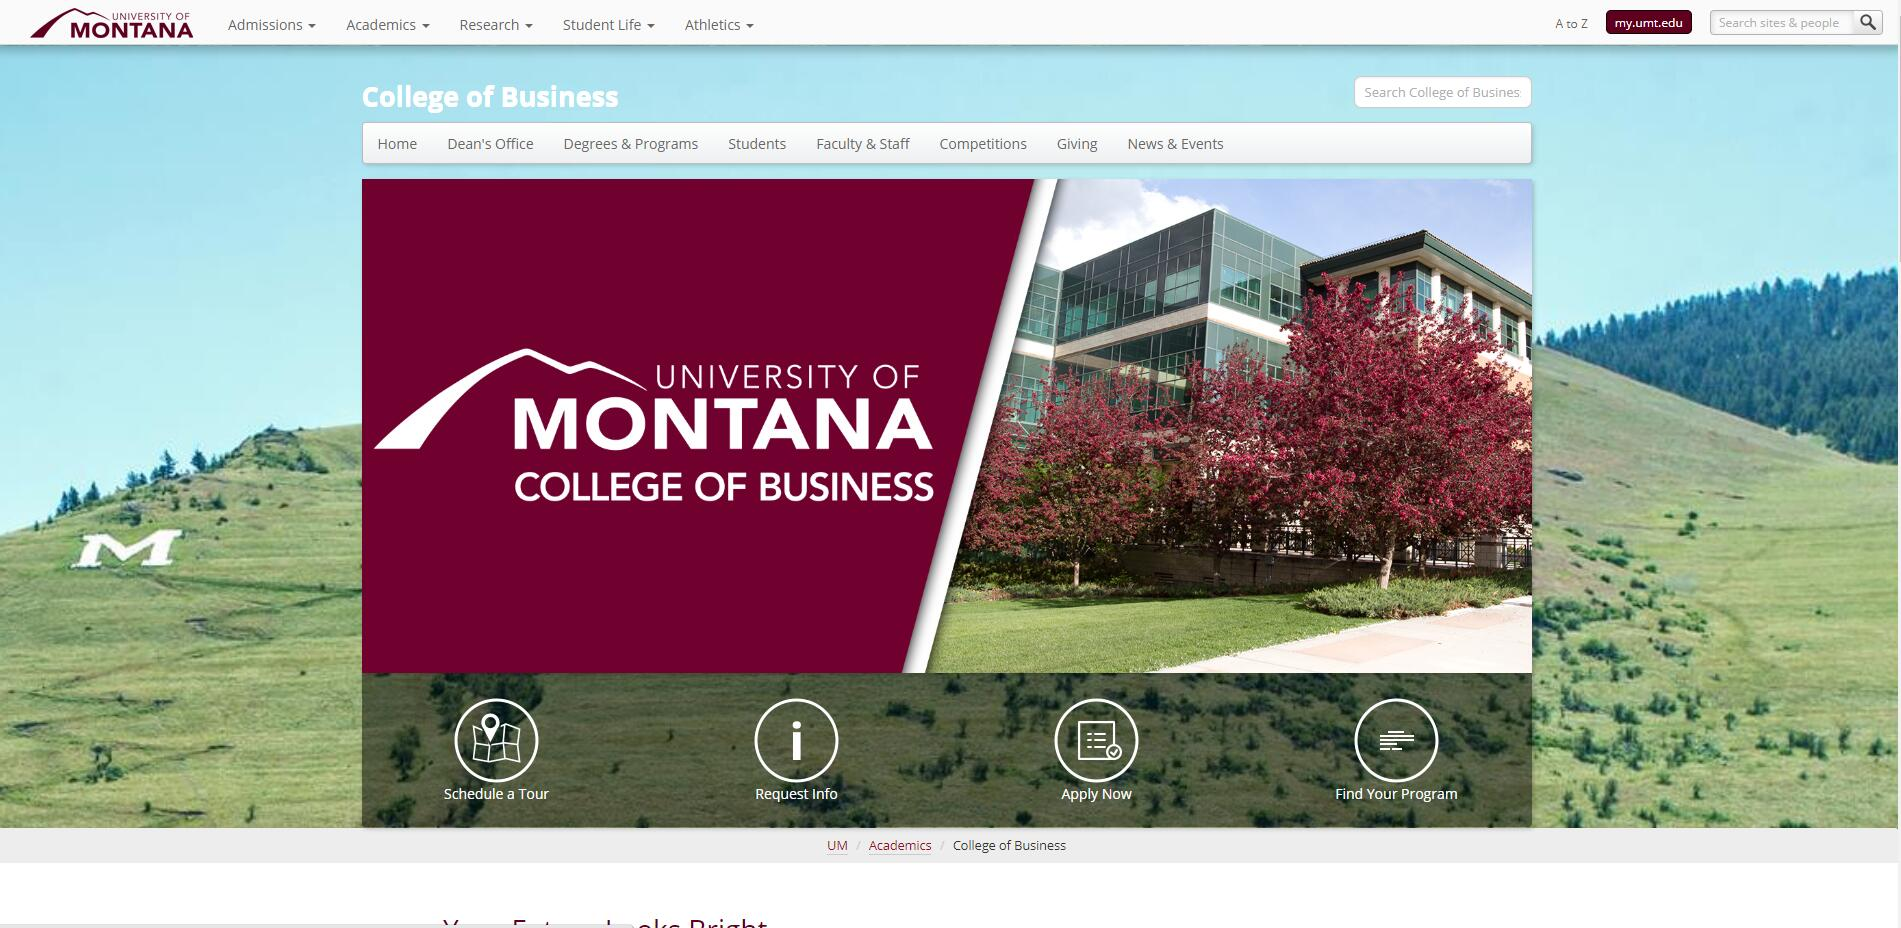 Top BBA Schools in Montana